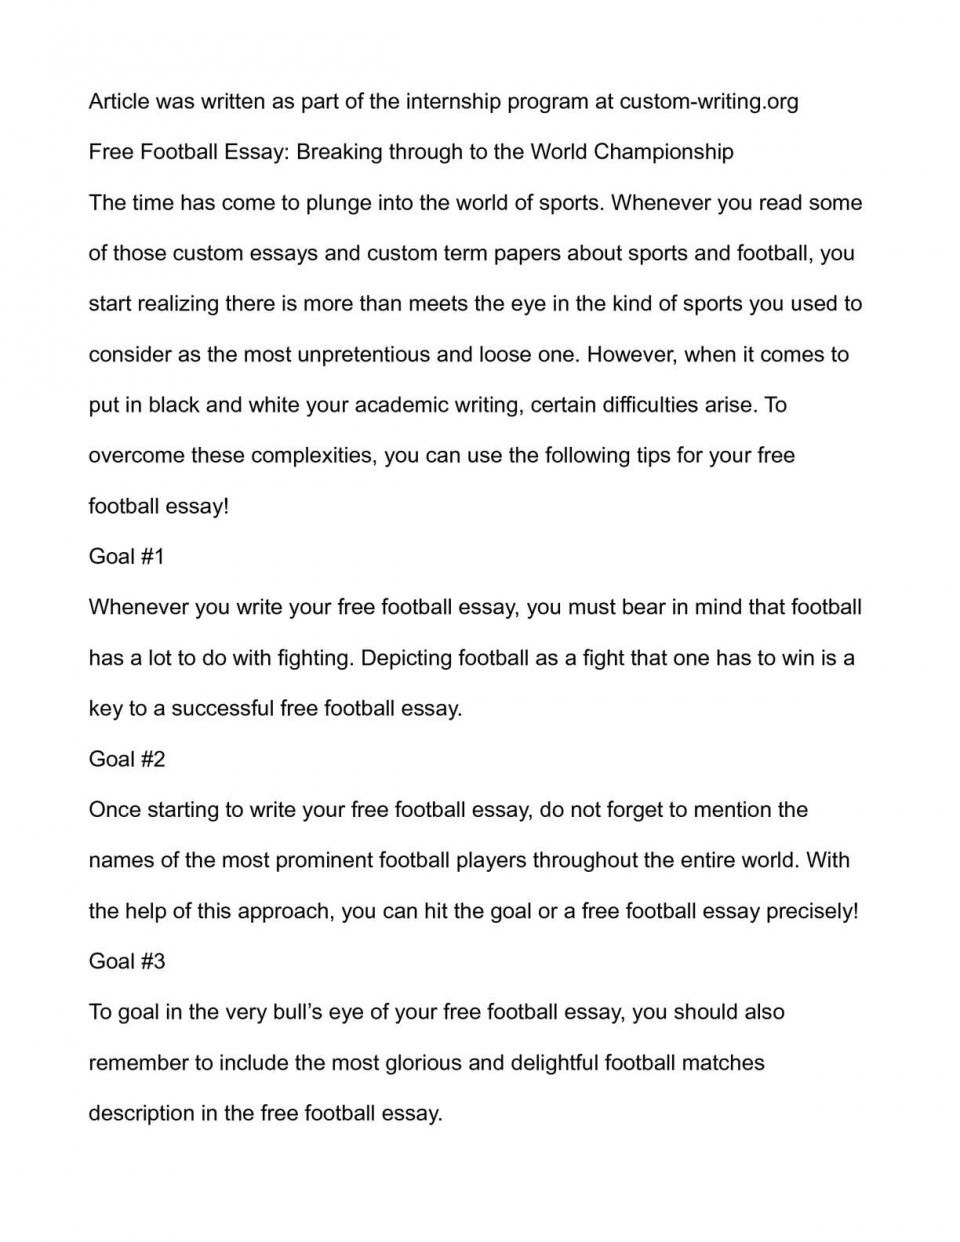 002 Football Essay P1 Exceptional My Favorite Game In Marathi Related Discursive Topics Hindi Wikipedia 960